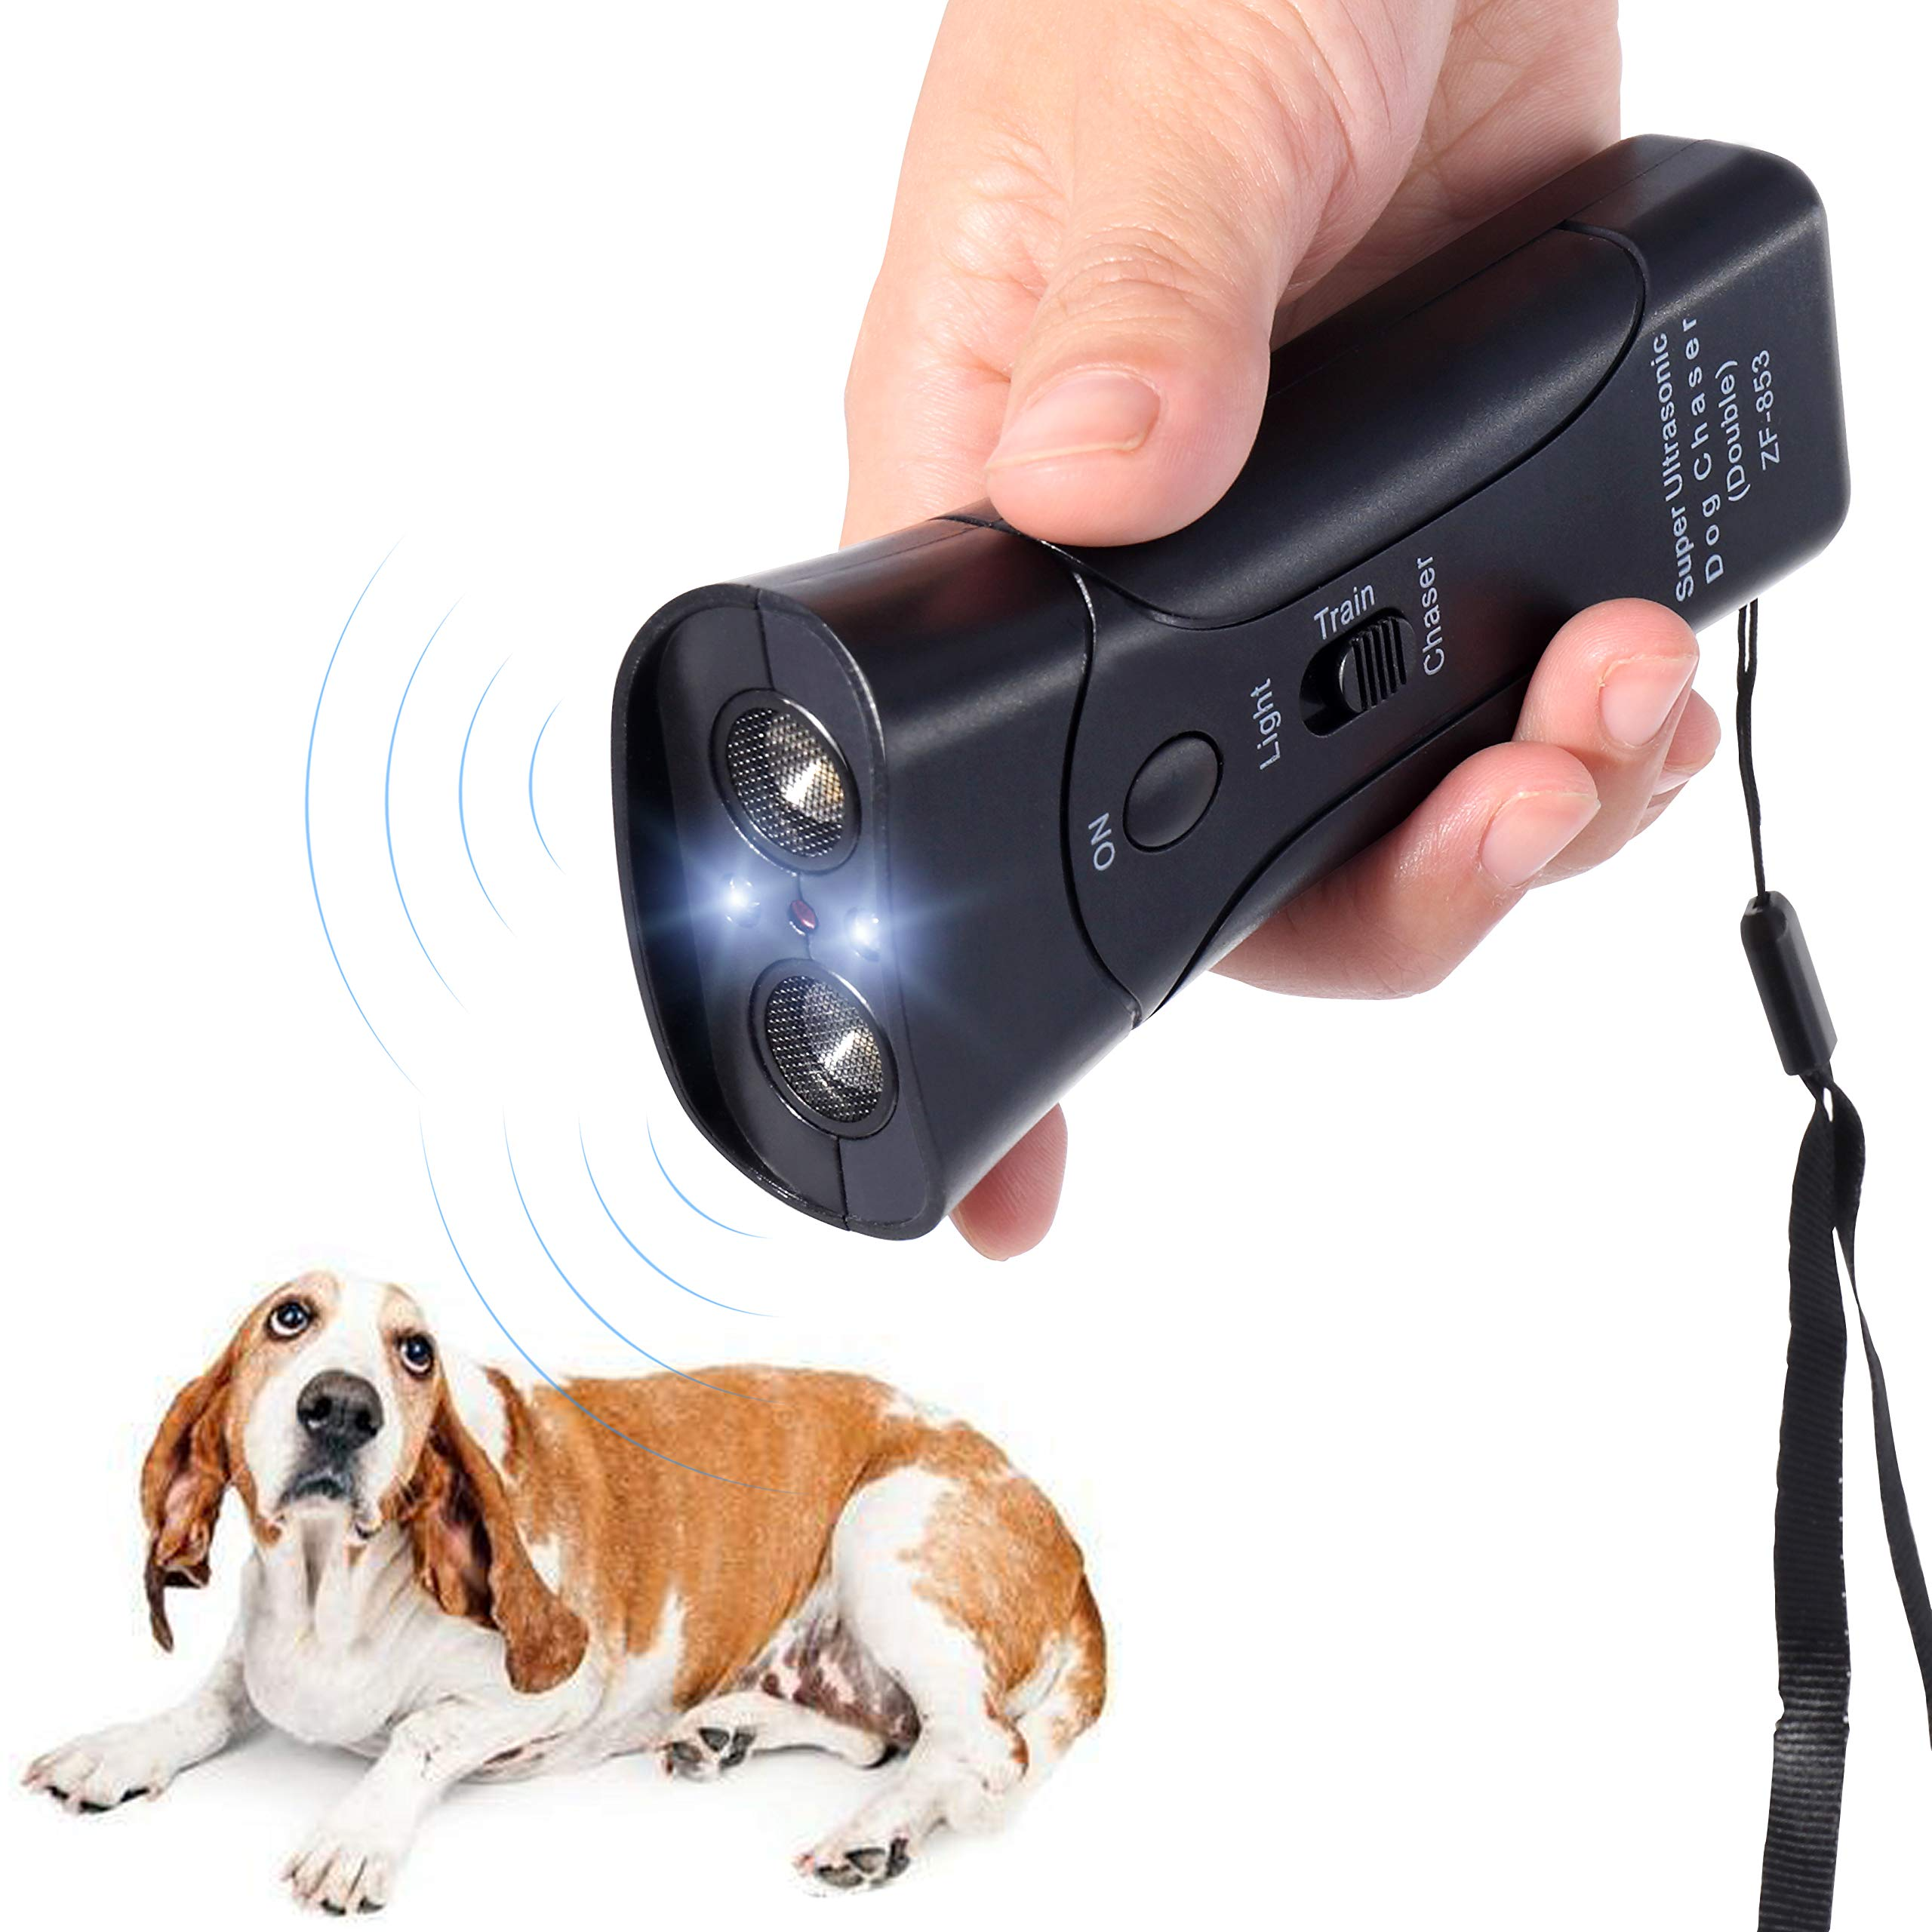 Handheld Dog Repellent & Trainer, Bark Stopper with LED Flashlight,Ultrasonic Infrared Dog Deterrent for Safety,Outdoor,Walking, Dog Trainer 100% Pet & Human Safe by PetUlove